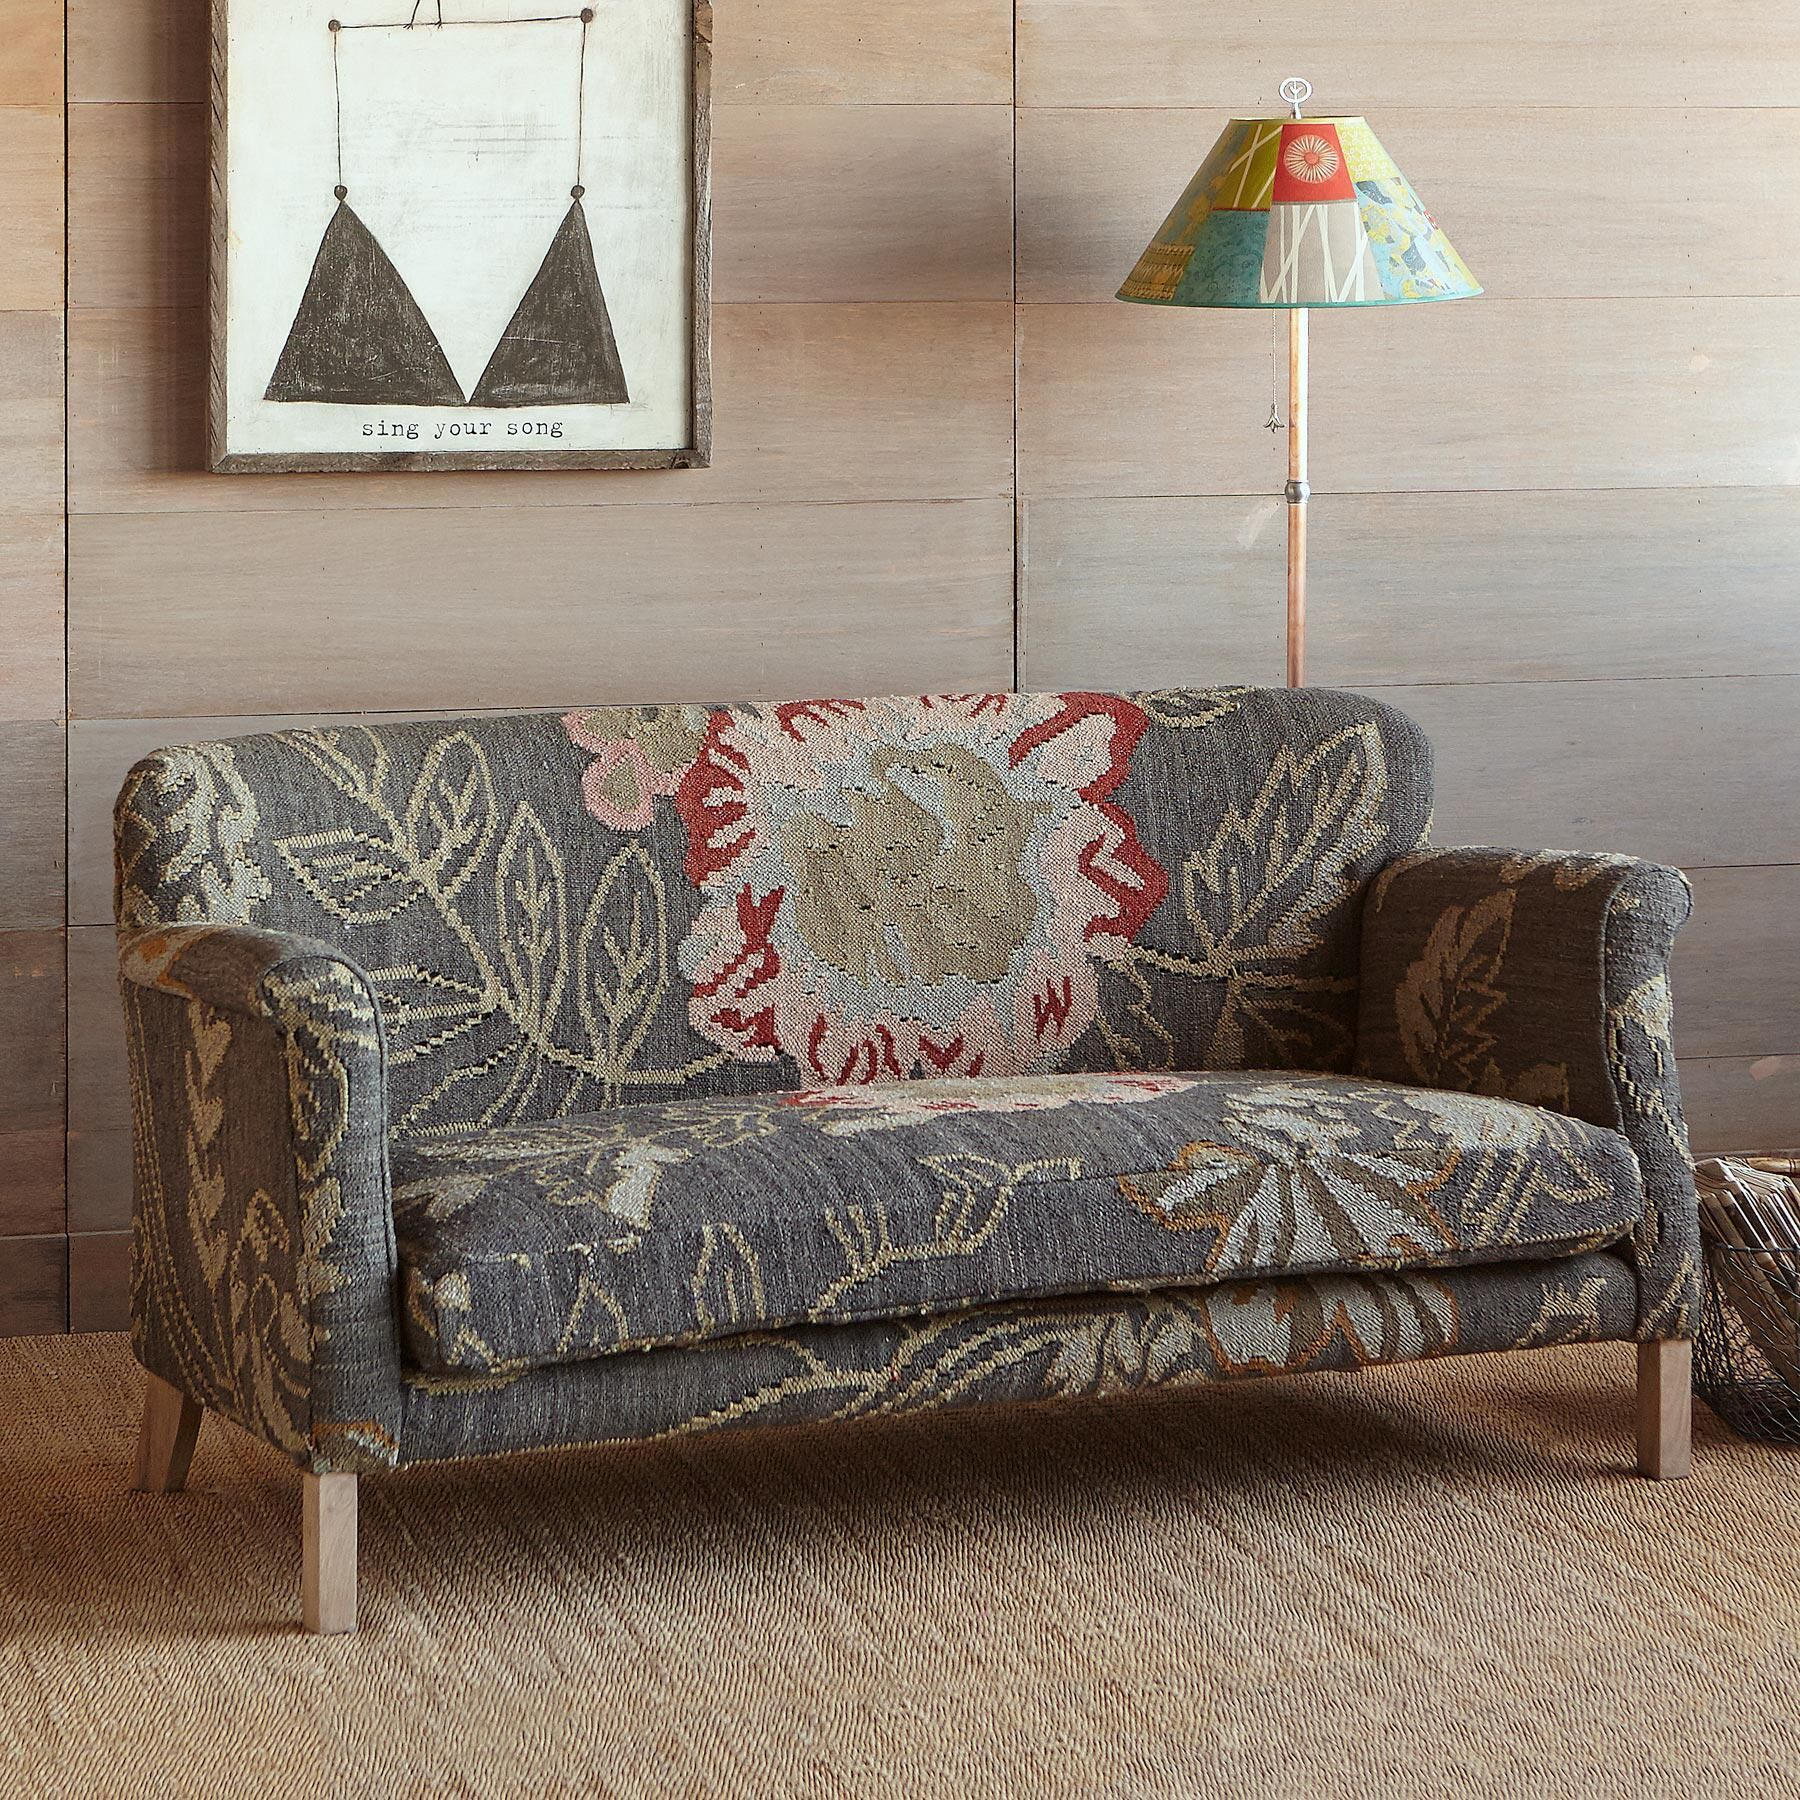 MOON GARDEN KILIM LOVESEAT Enjoy the unique beauty of